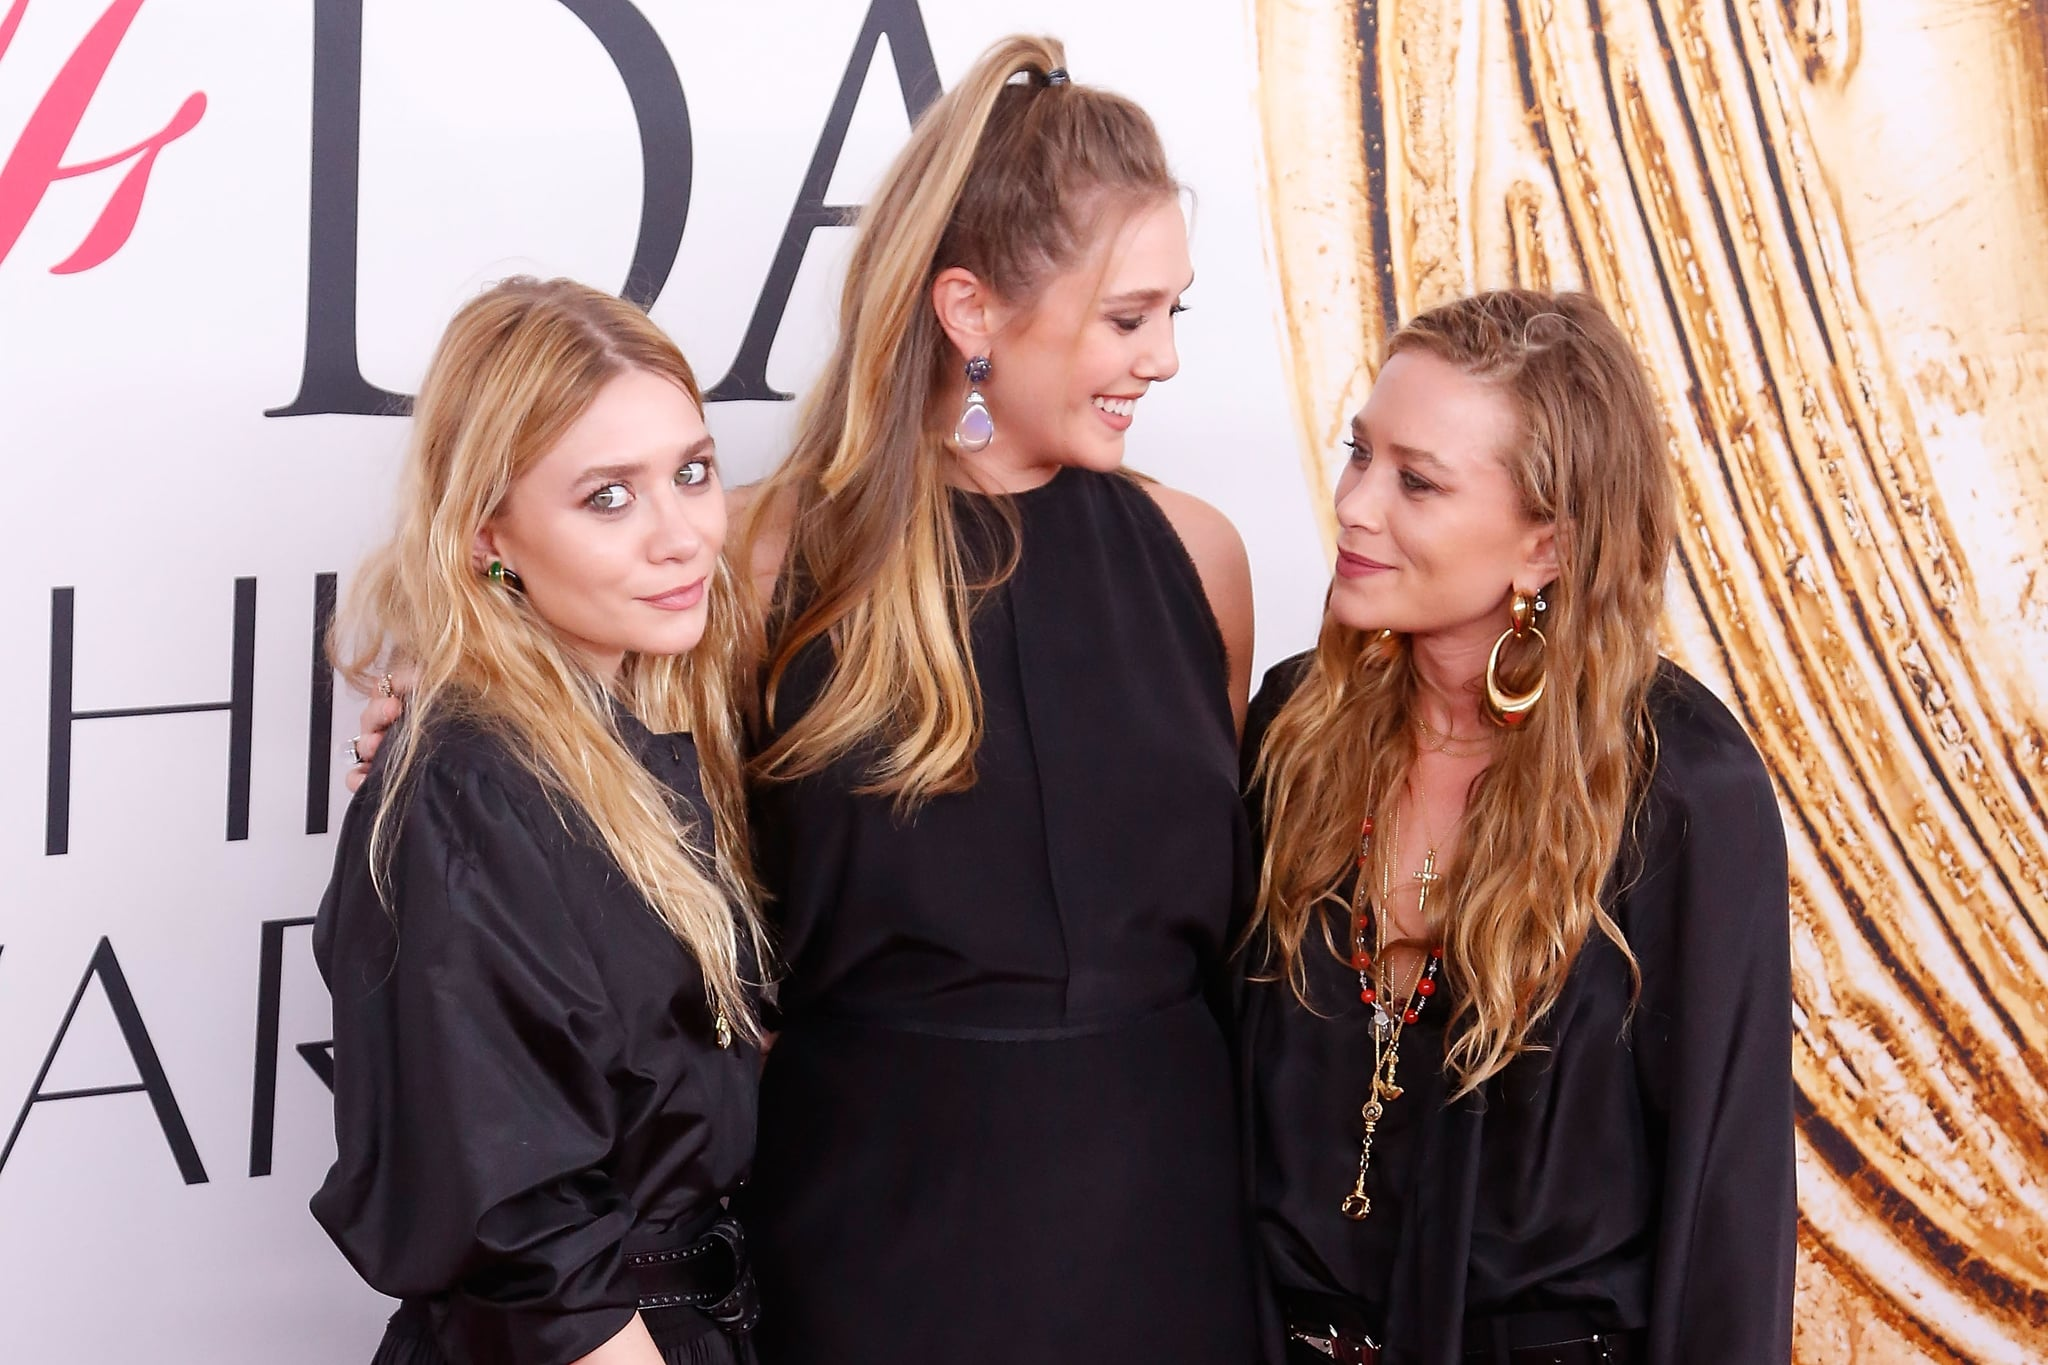 NEW YORK, NY - JUNE 06:  Ashley Olsen, Elizabeth Olsen, and Mary-Kate Olsen attend the 2016 CFDA Fashion Awards at the Hammerstein Ballroom on June 6, 2016 in New York City.  (Photo by Taylor Hill/FilmMagic)